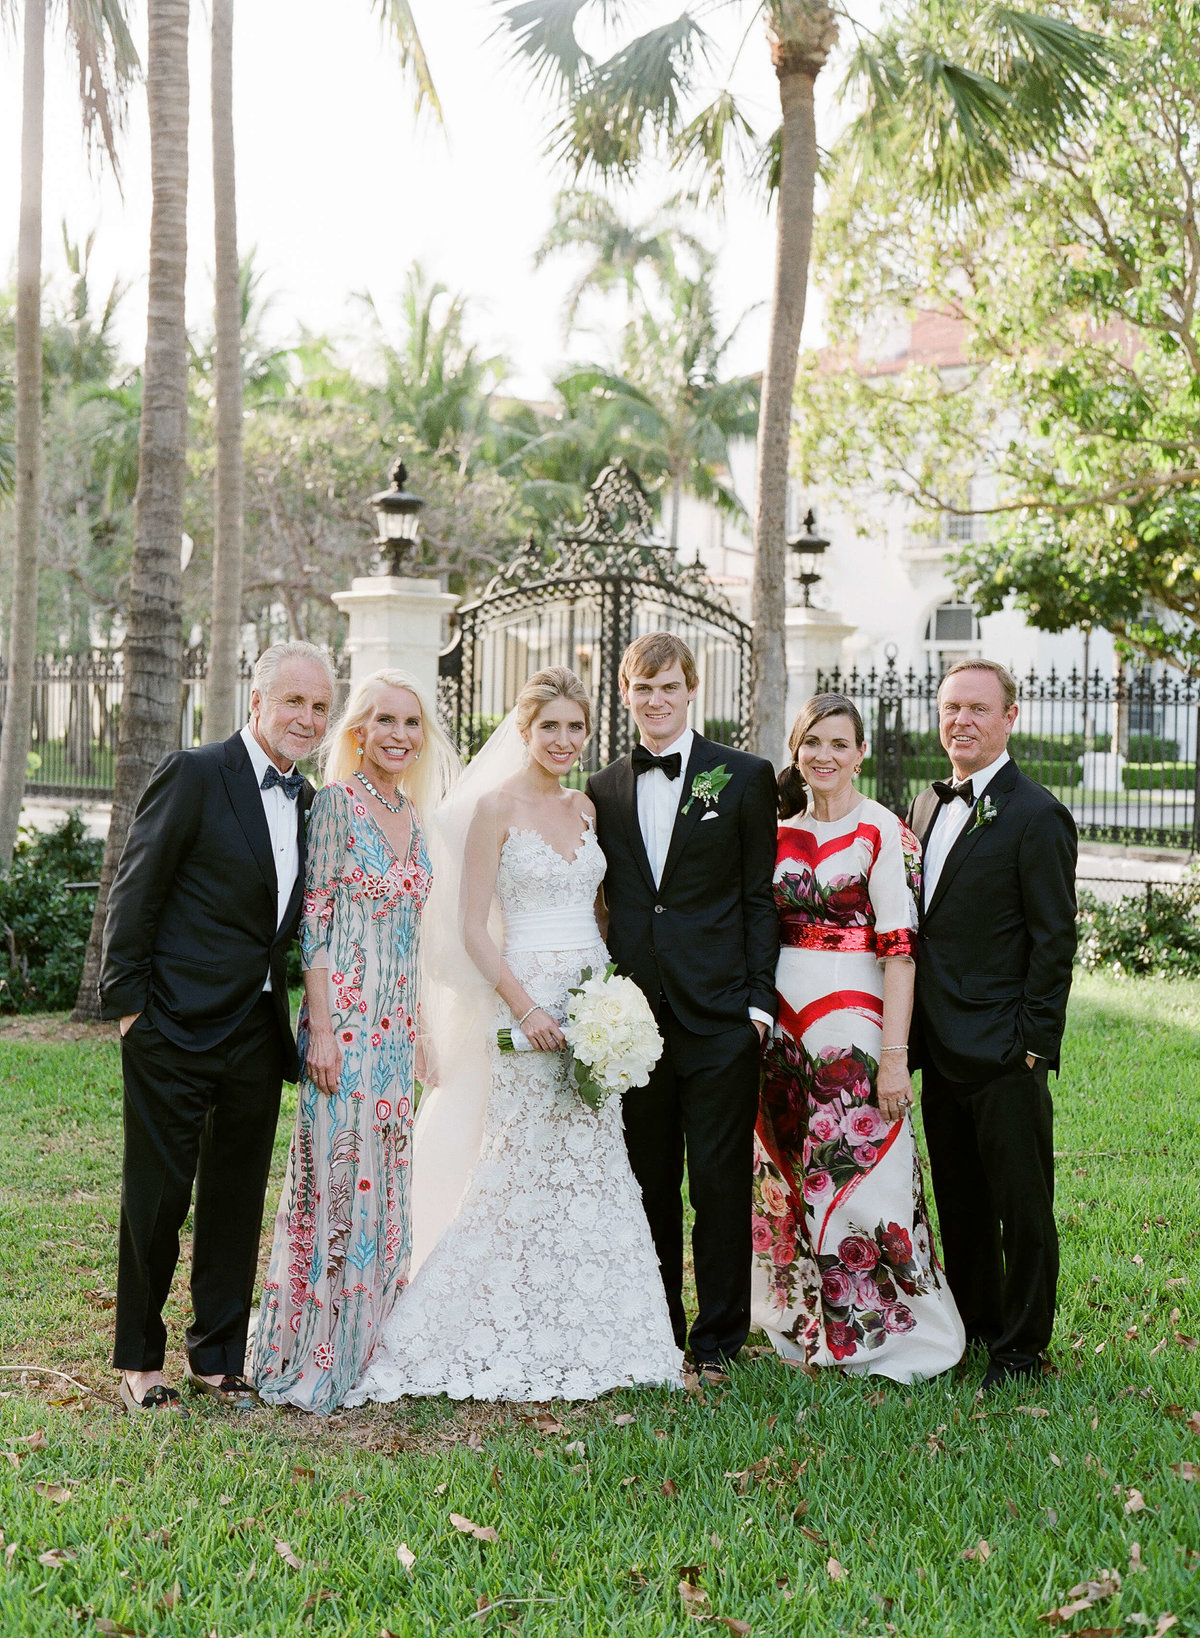 31-KTMerry-weddings-family-portrait-Palm-Beach